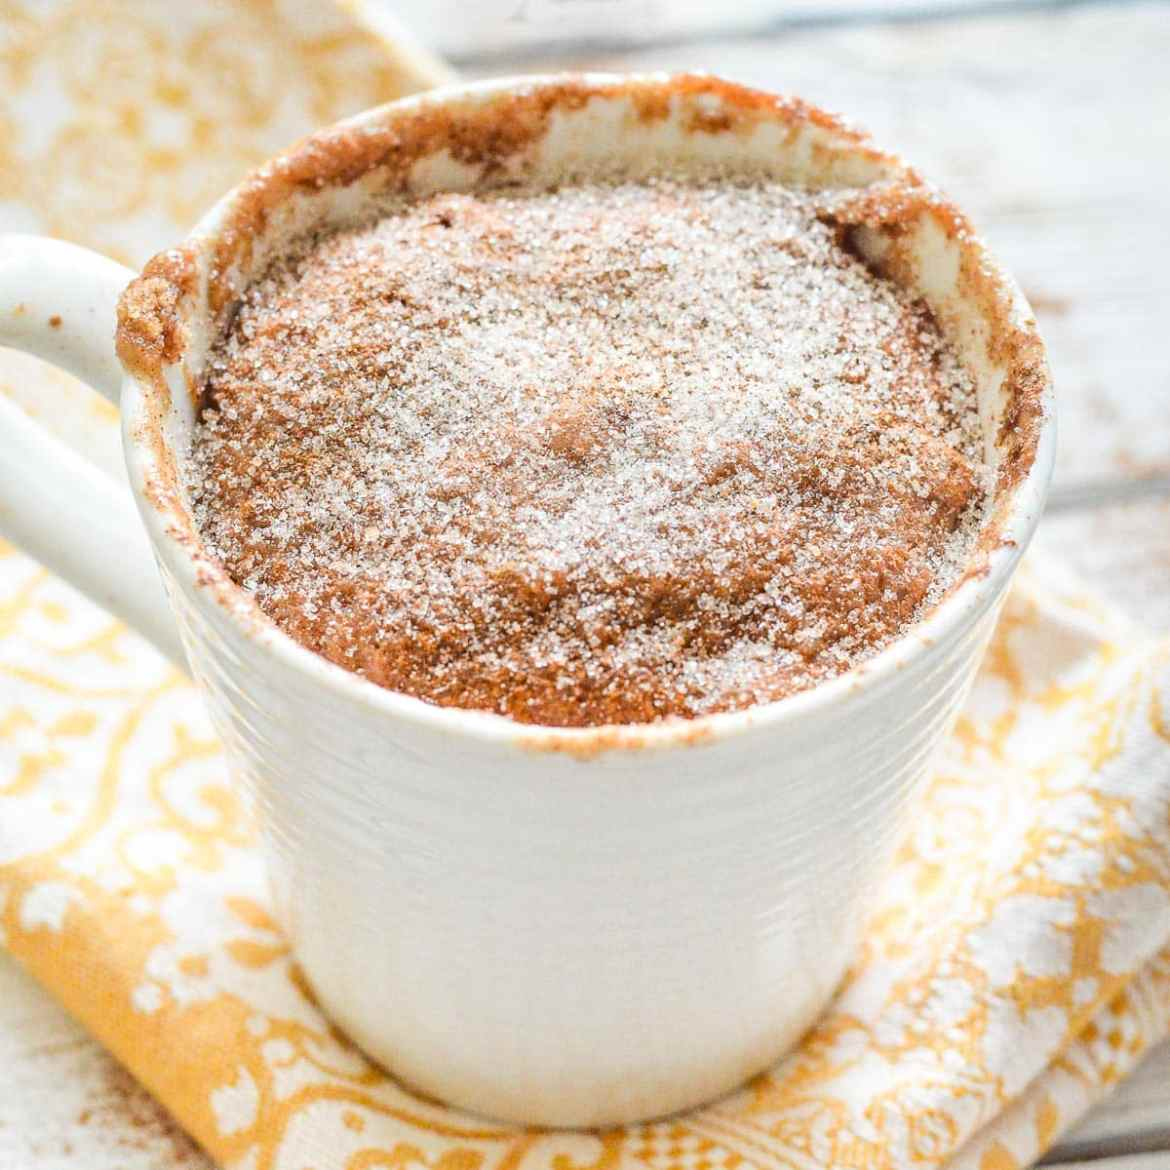 10 Easy Mug Cakes and Desserts You Can Make In Your Microwave